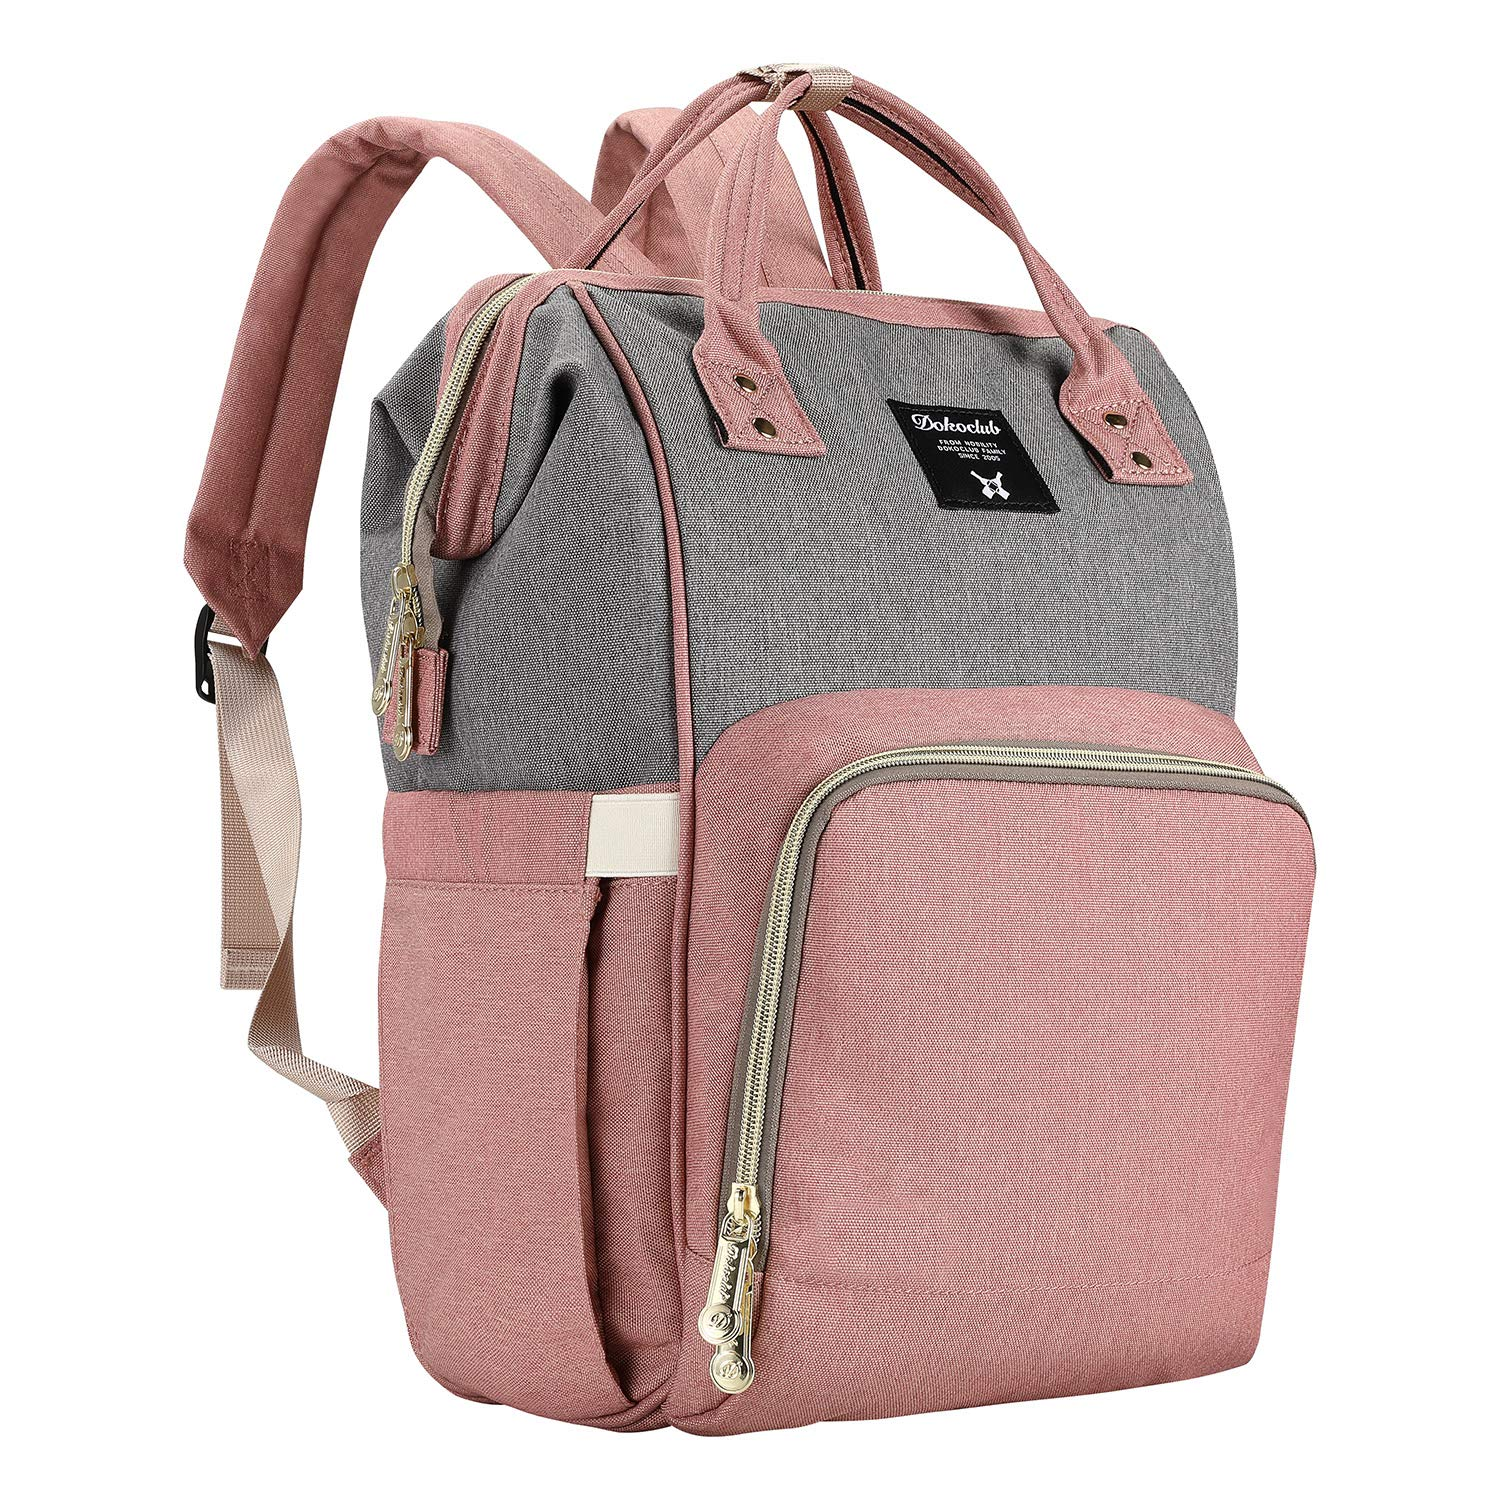 Backpack Diaper Bag Baby Bags for Mom, Large Capacity Diaper Backpacks Nappy Travel Bags, Multi-Function Waterproof, Stylish and Durable (Gray-Pink)